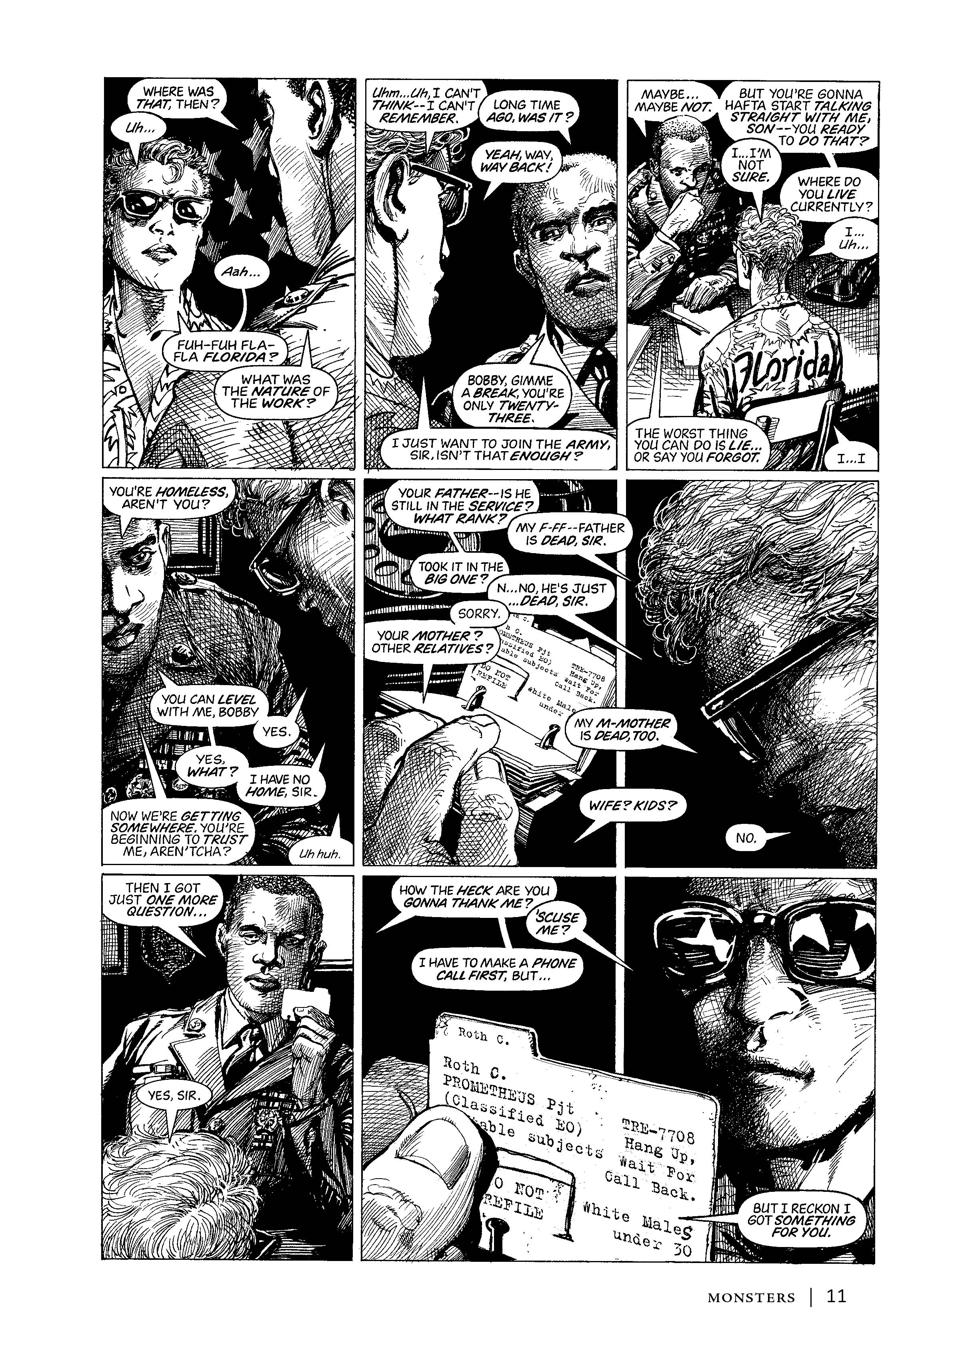 Page from Monsters graphic novel Barry Windsor-Smith